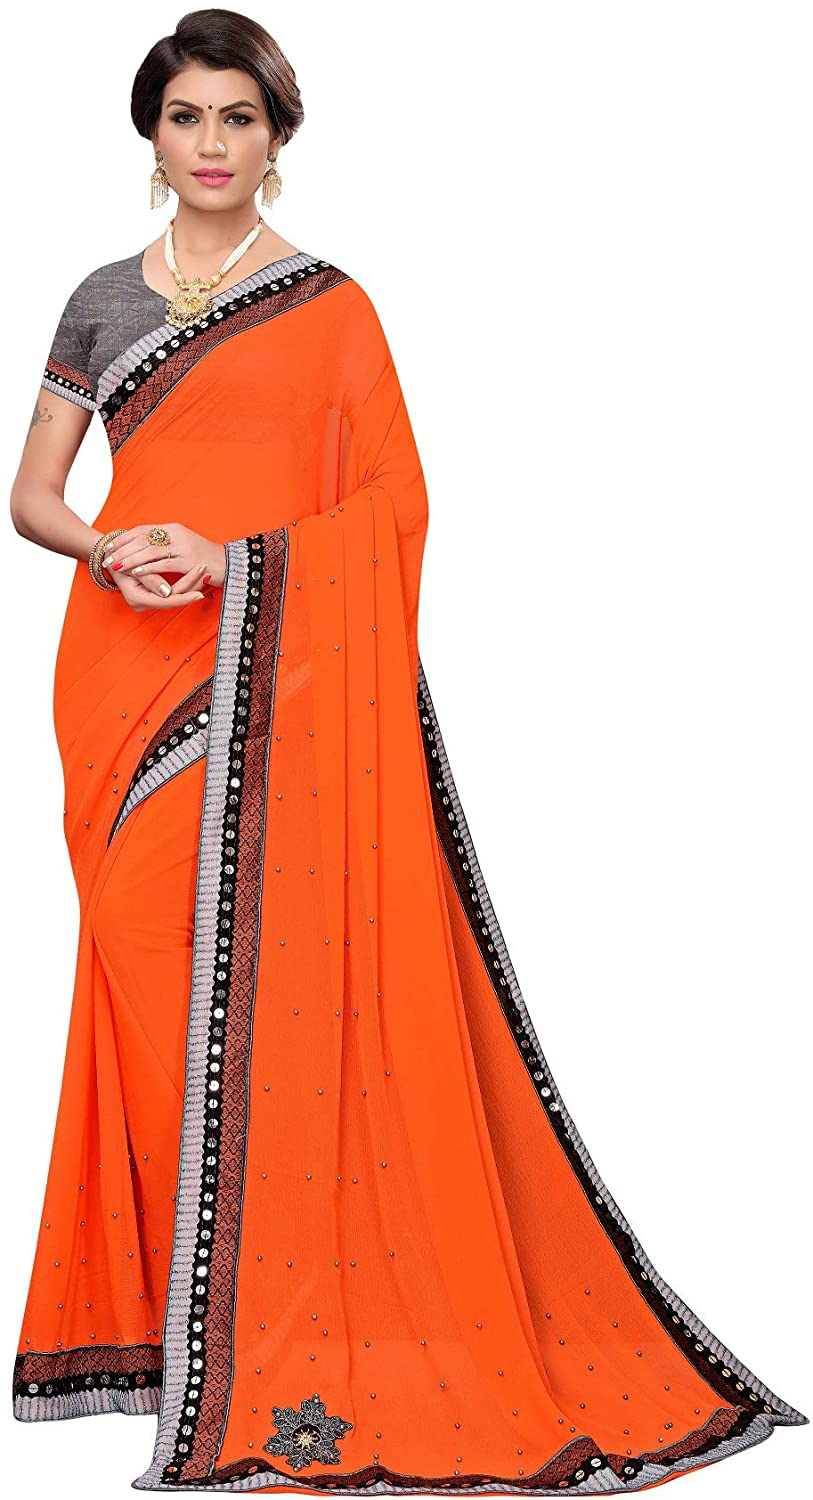 Peegli Saree Indian Women's Chiffon Saree Mirror Work Sari with Blouse Piece